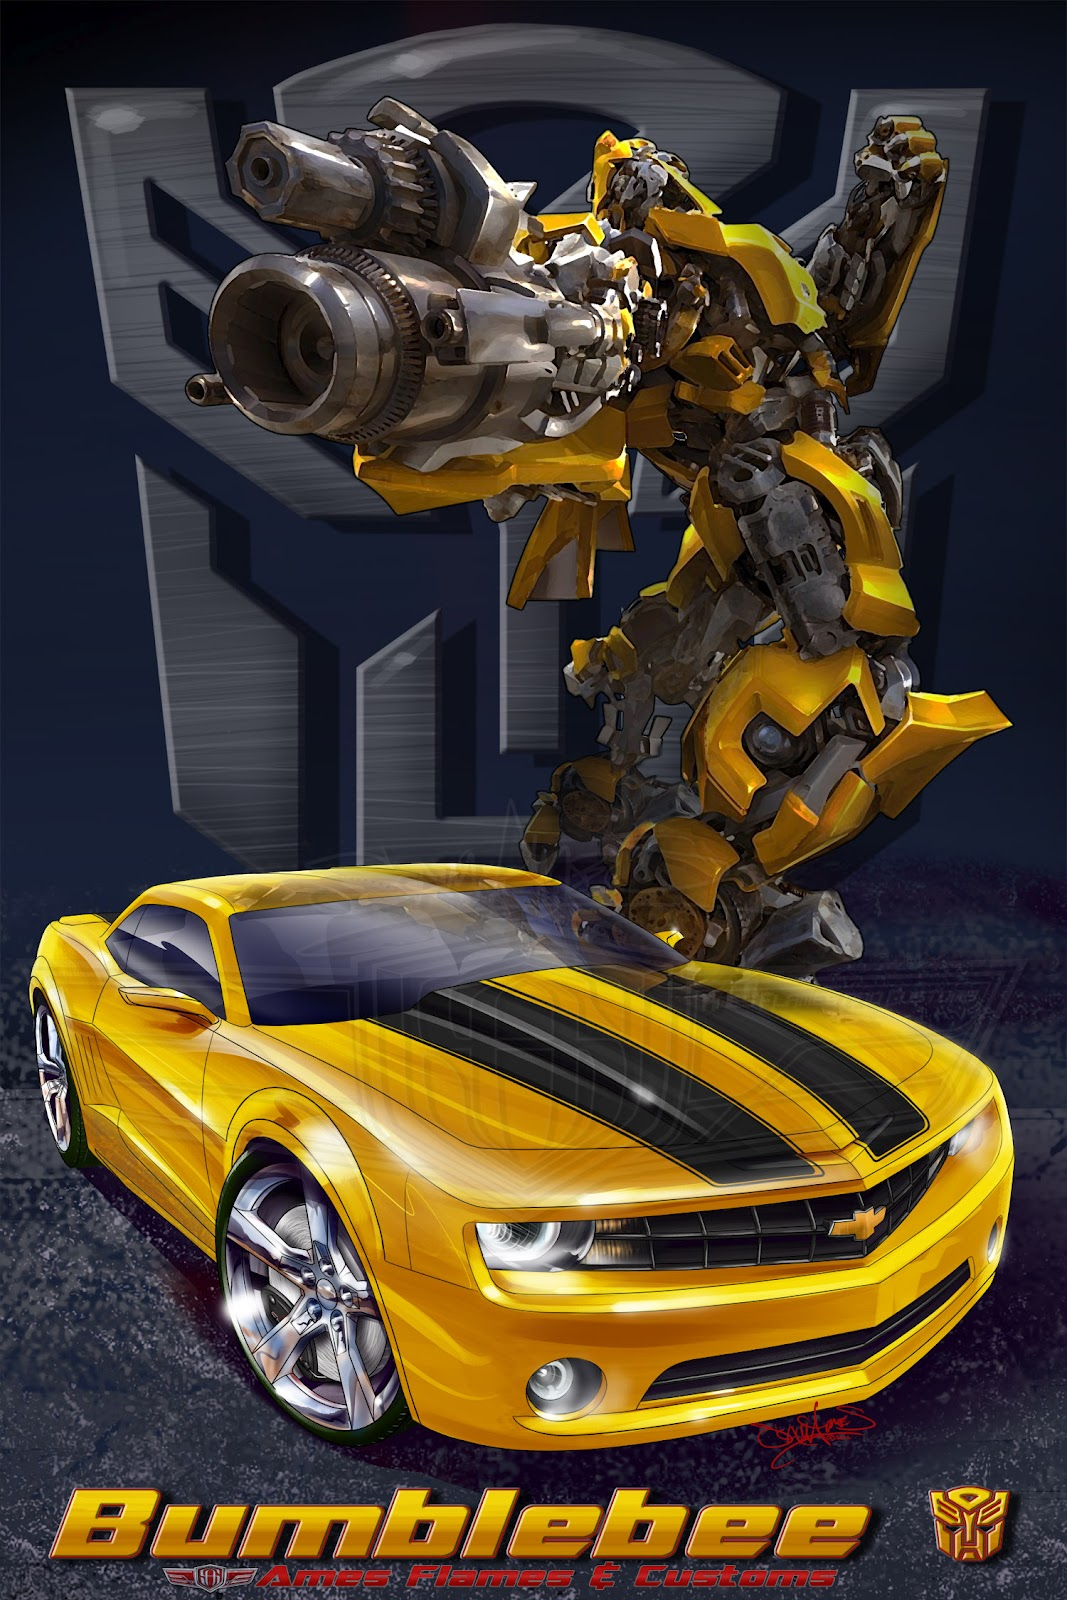 The Car Movie 1977 Wallpaper Sam Ames Transformers Bumblebee Old And New 1977 Camaro